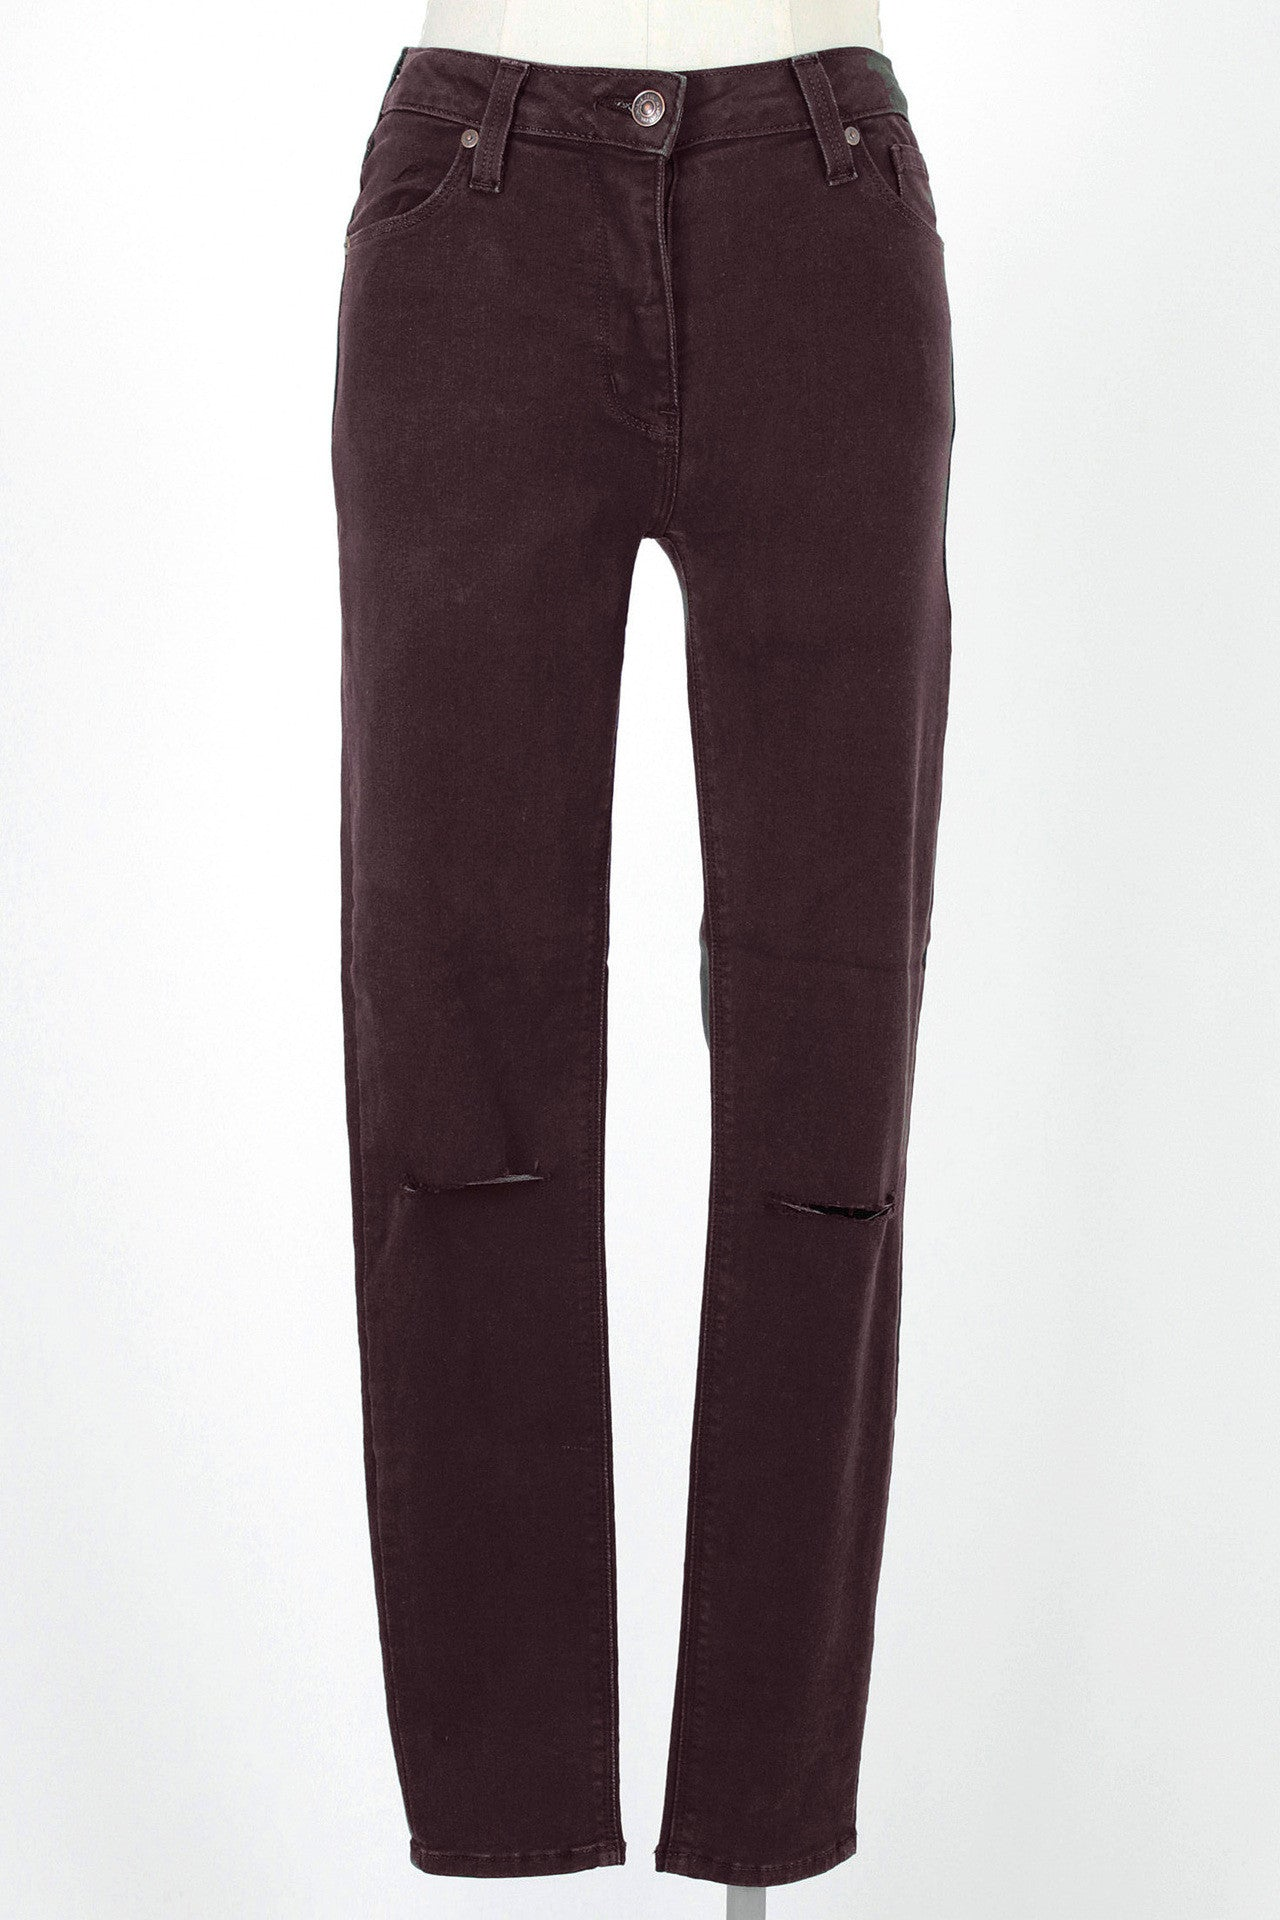 Slit Knee 9 inch High Rise Skinny Jean / Burgundy